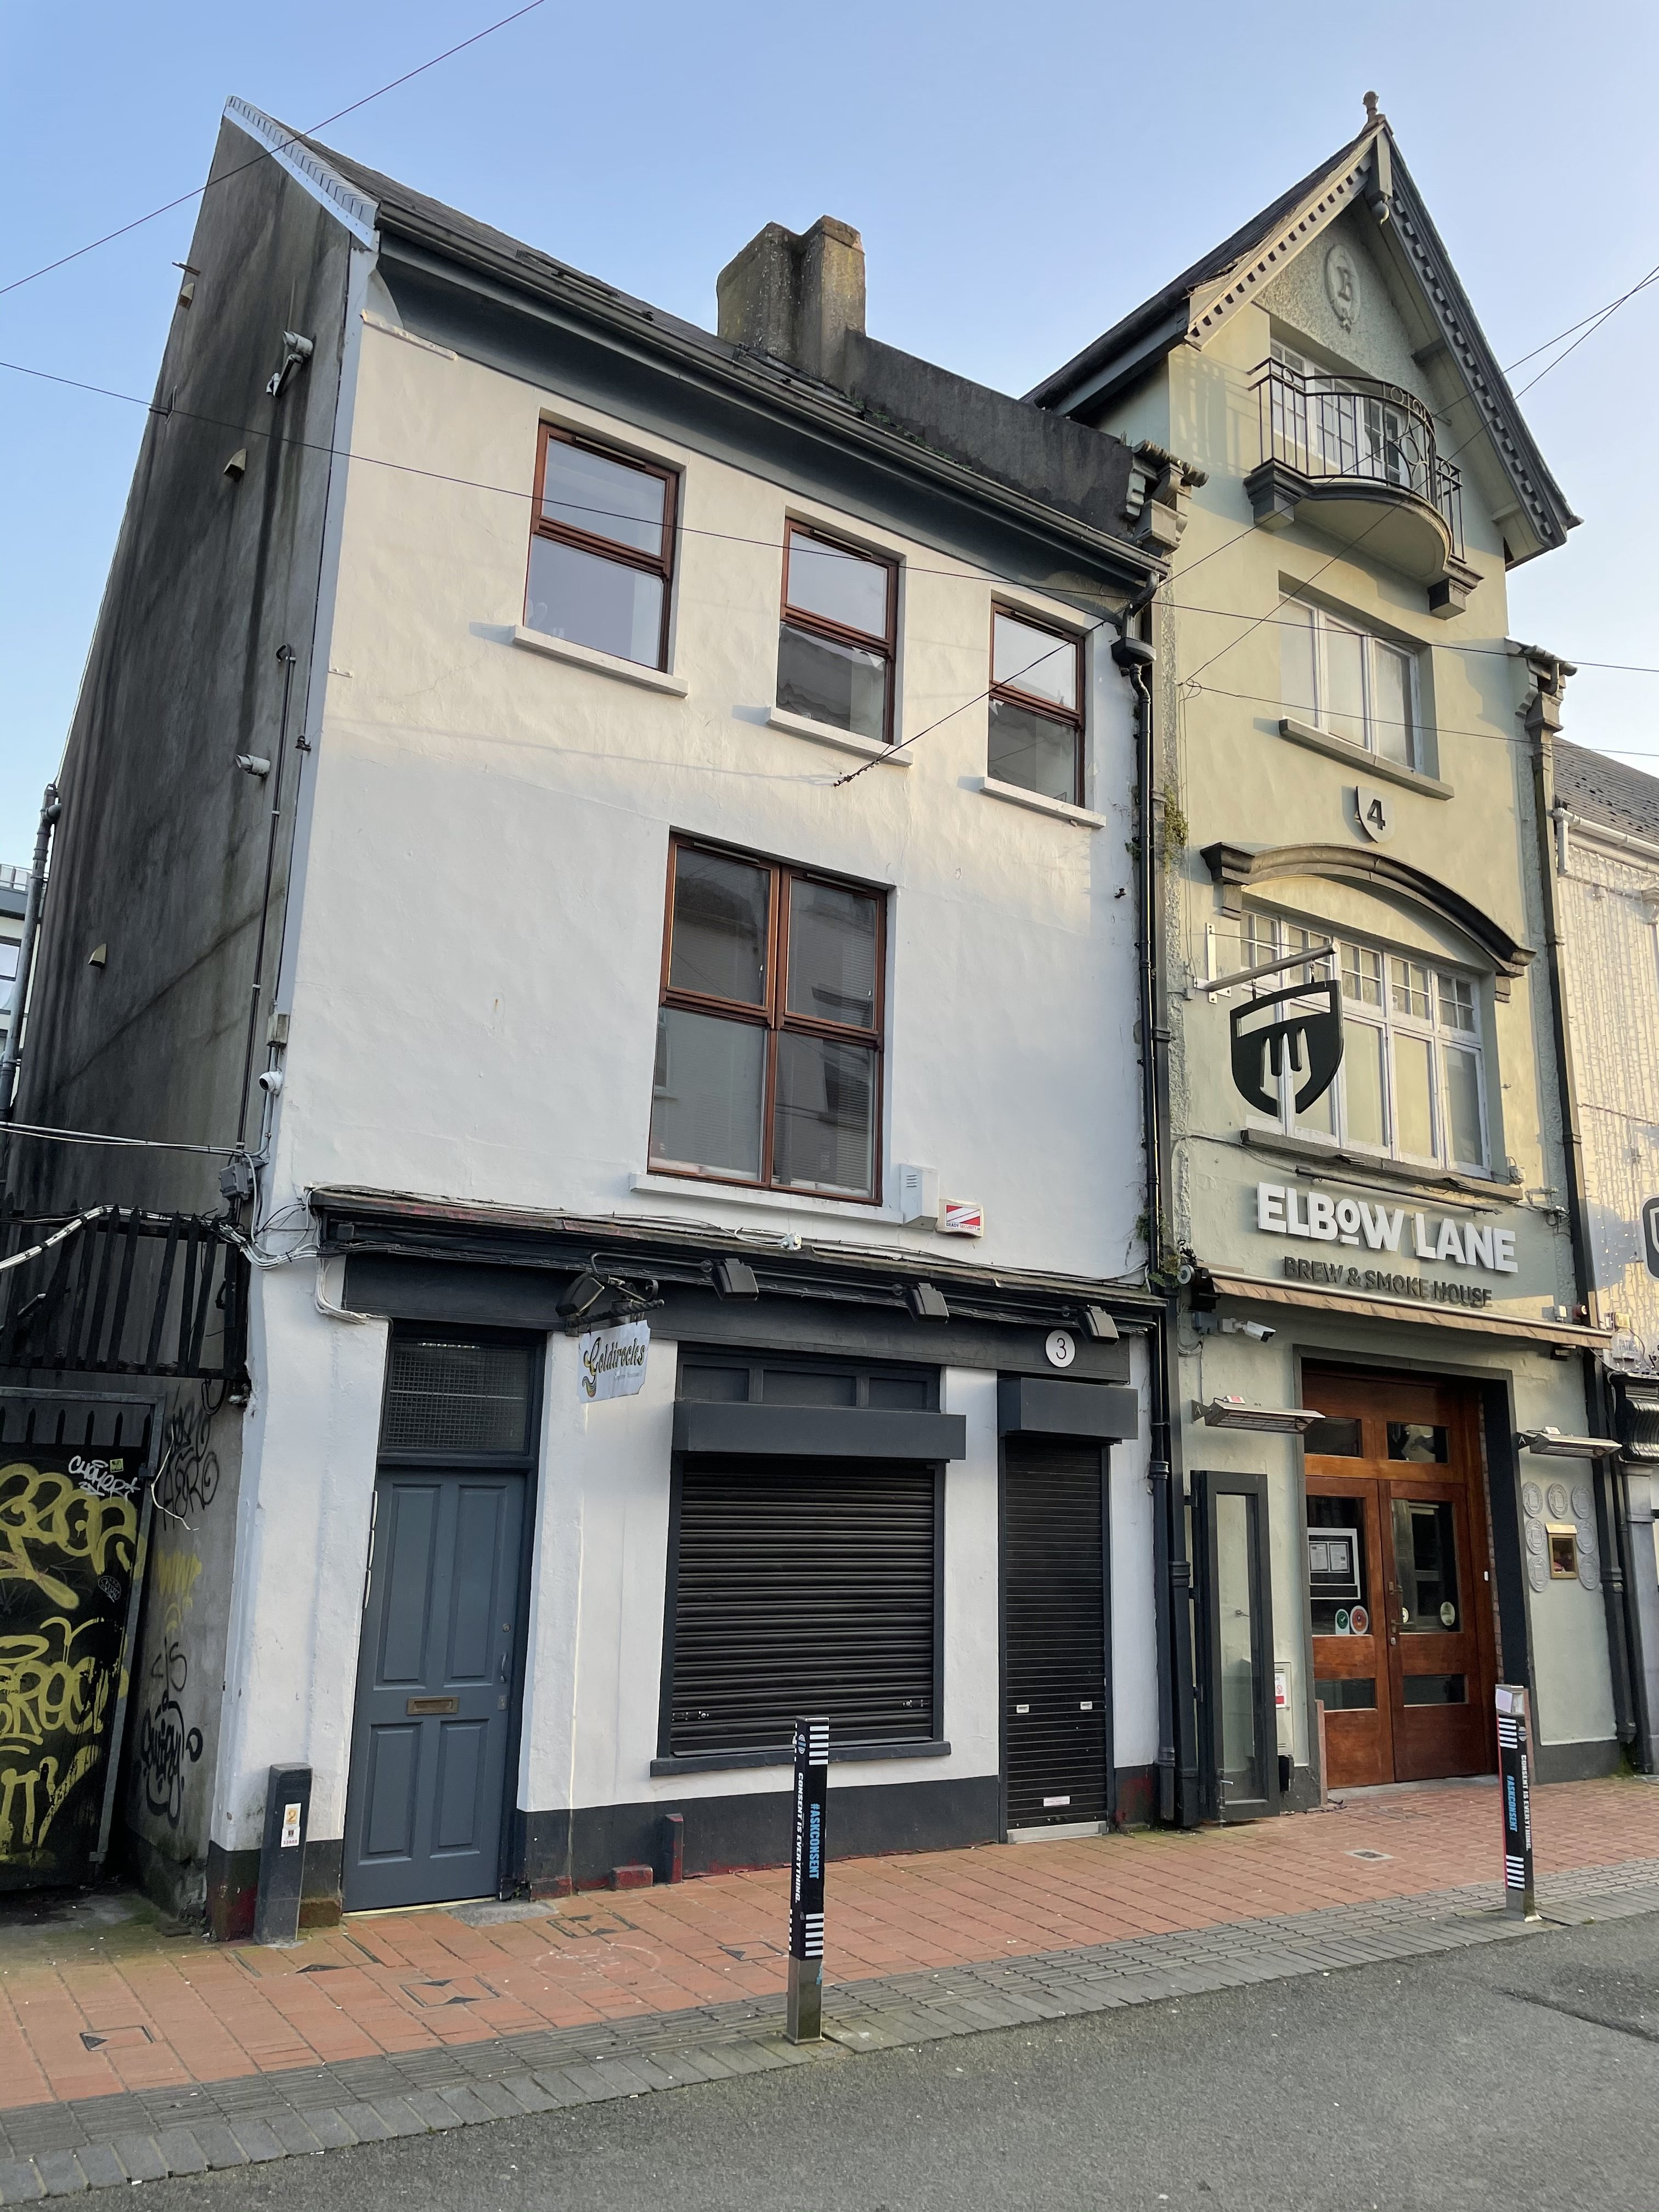 On the left, End-of-terrace three-bay by three-storey former house, built c. 1780,Oliver Plunkett Street, Cork, present day (picture: Kieran McCarthy)